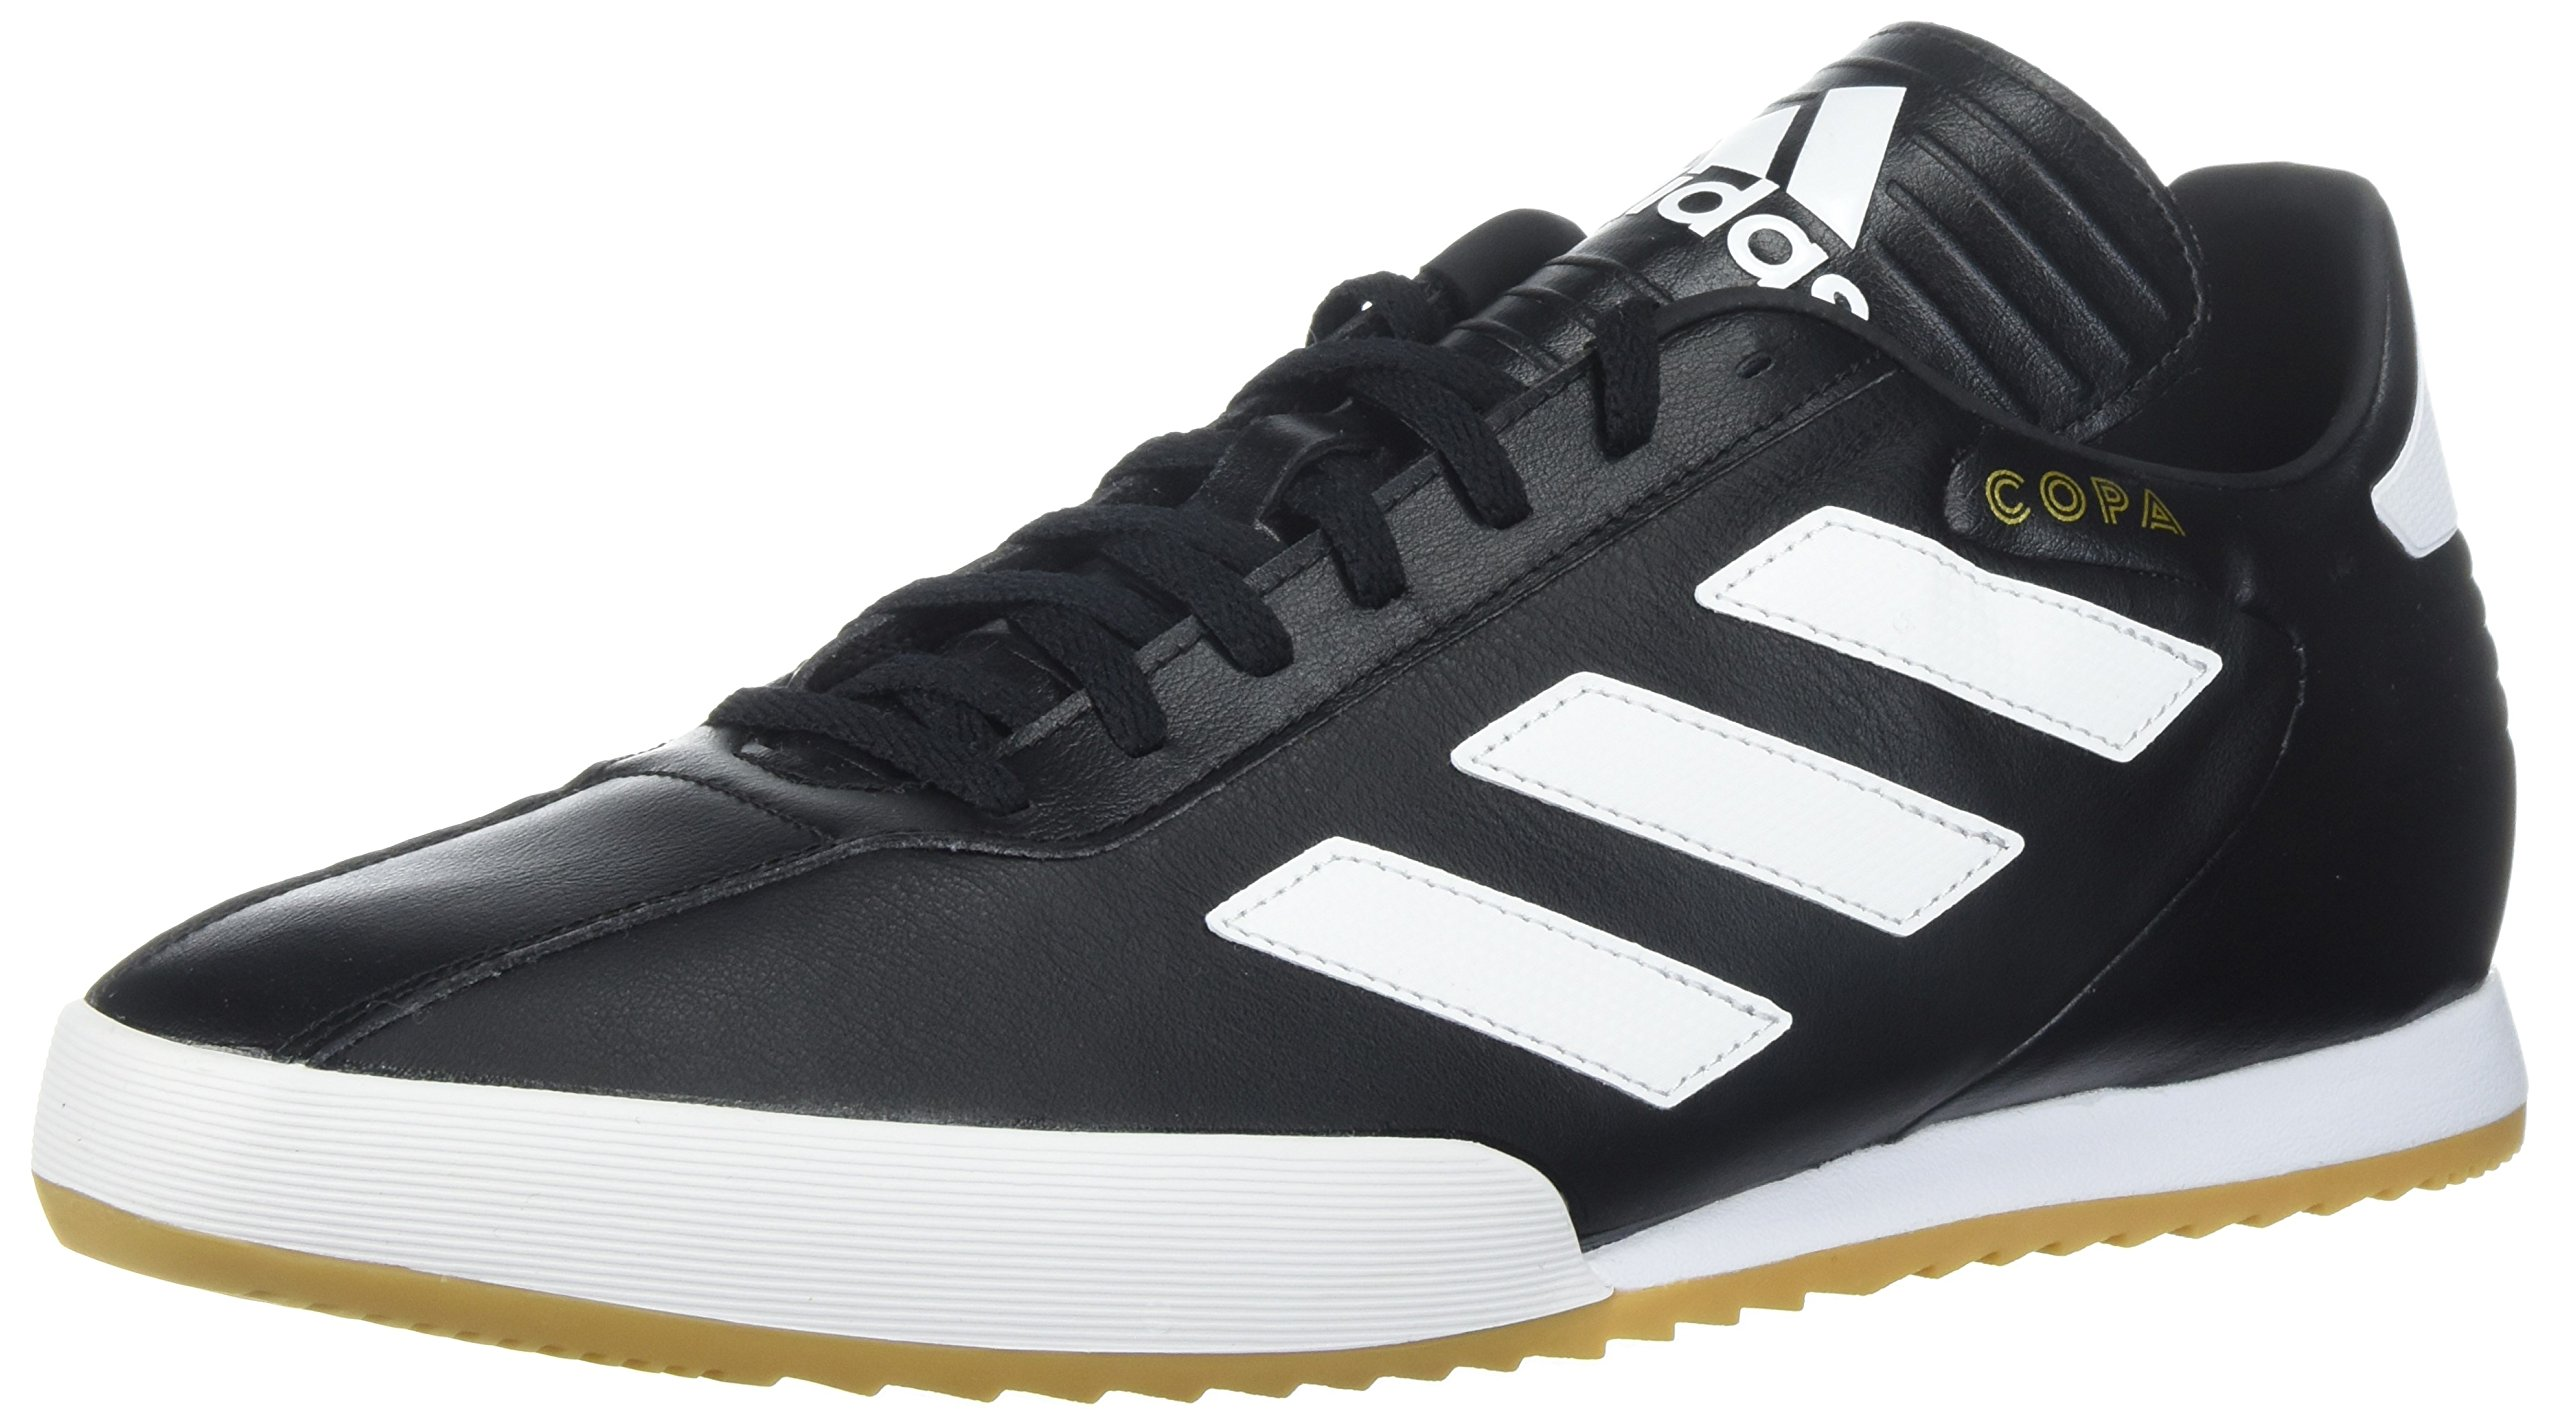 adidas Originals Men's COPA Super Soccer Shoe, Black/White/Gold Metallic, 11 M US by adidas Originals